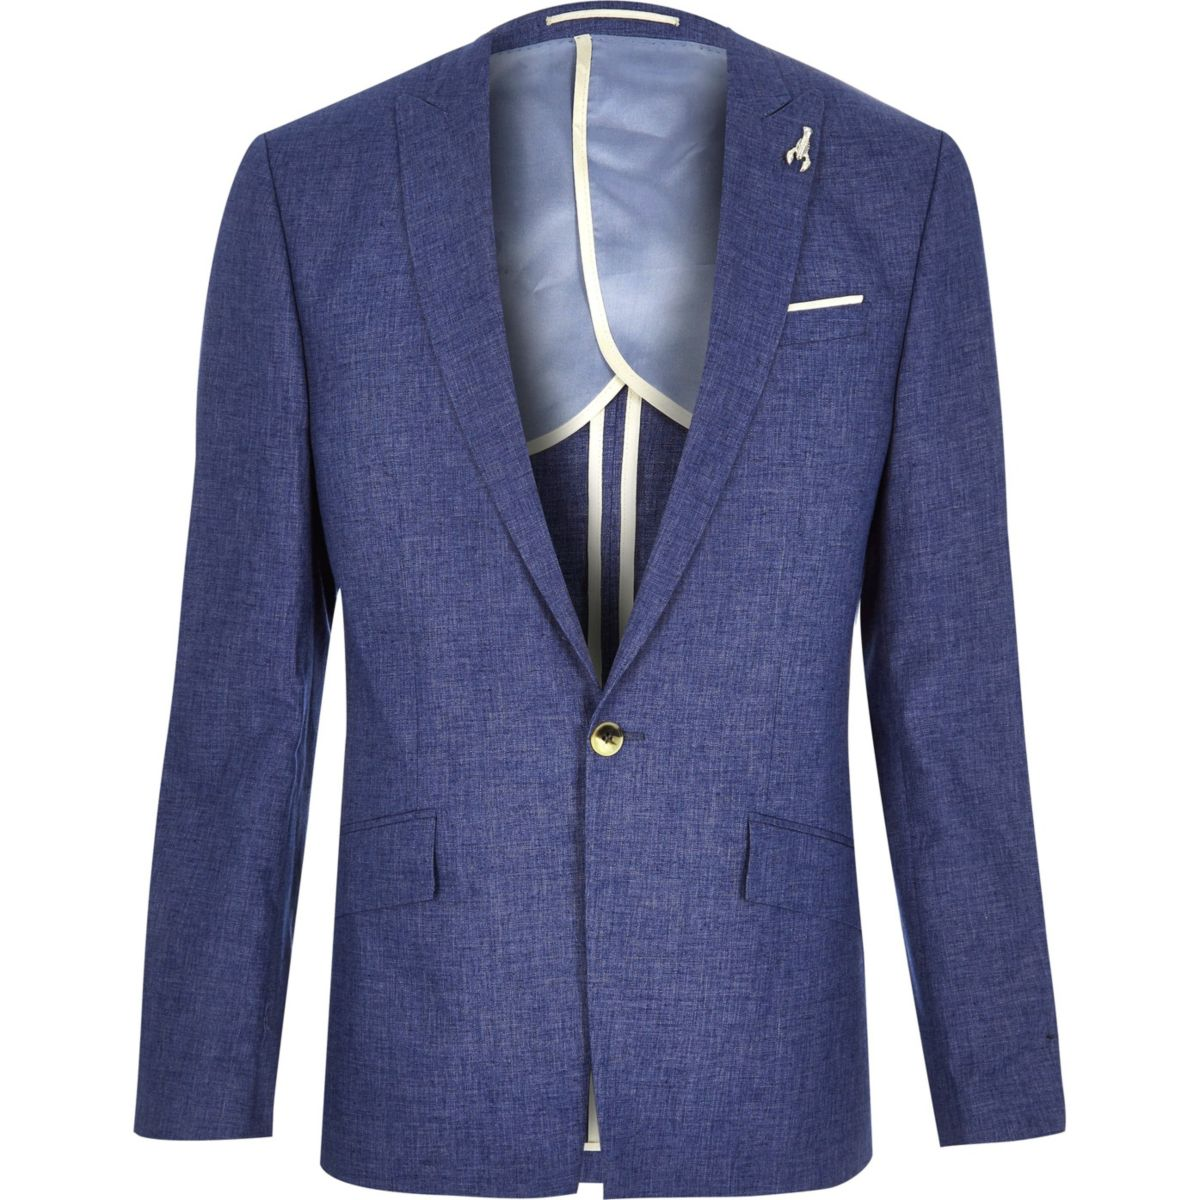 Blue linen slim fit suit jacket - Seasonal Offers - Sale - men